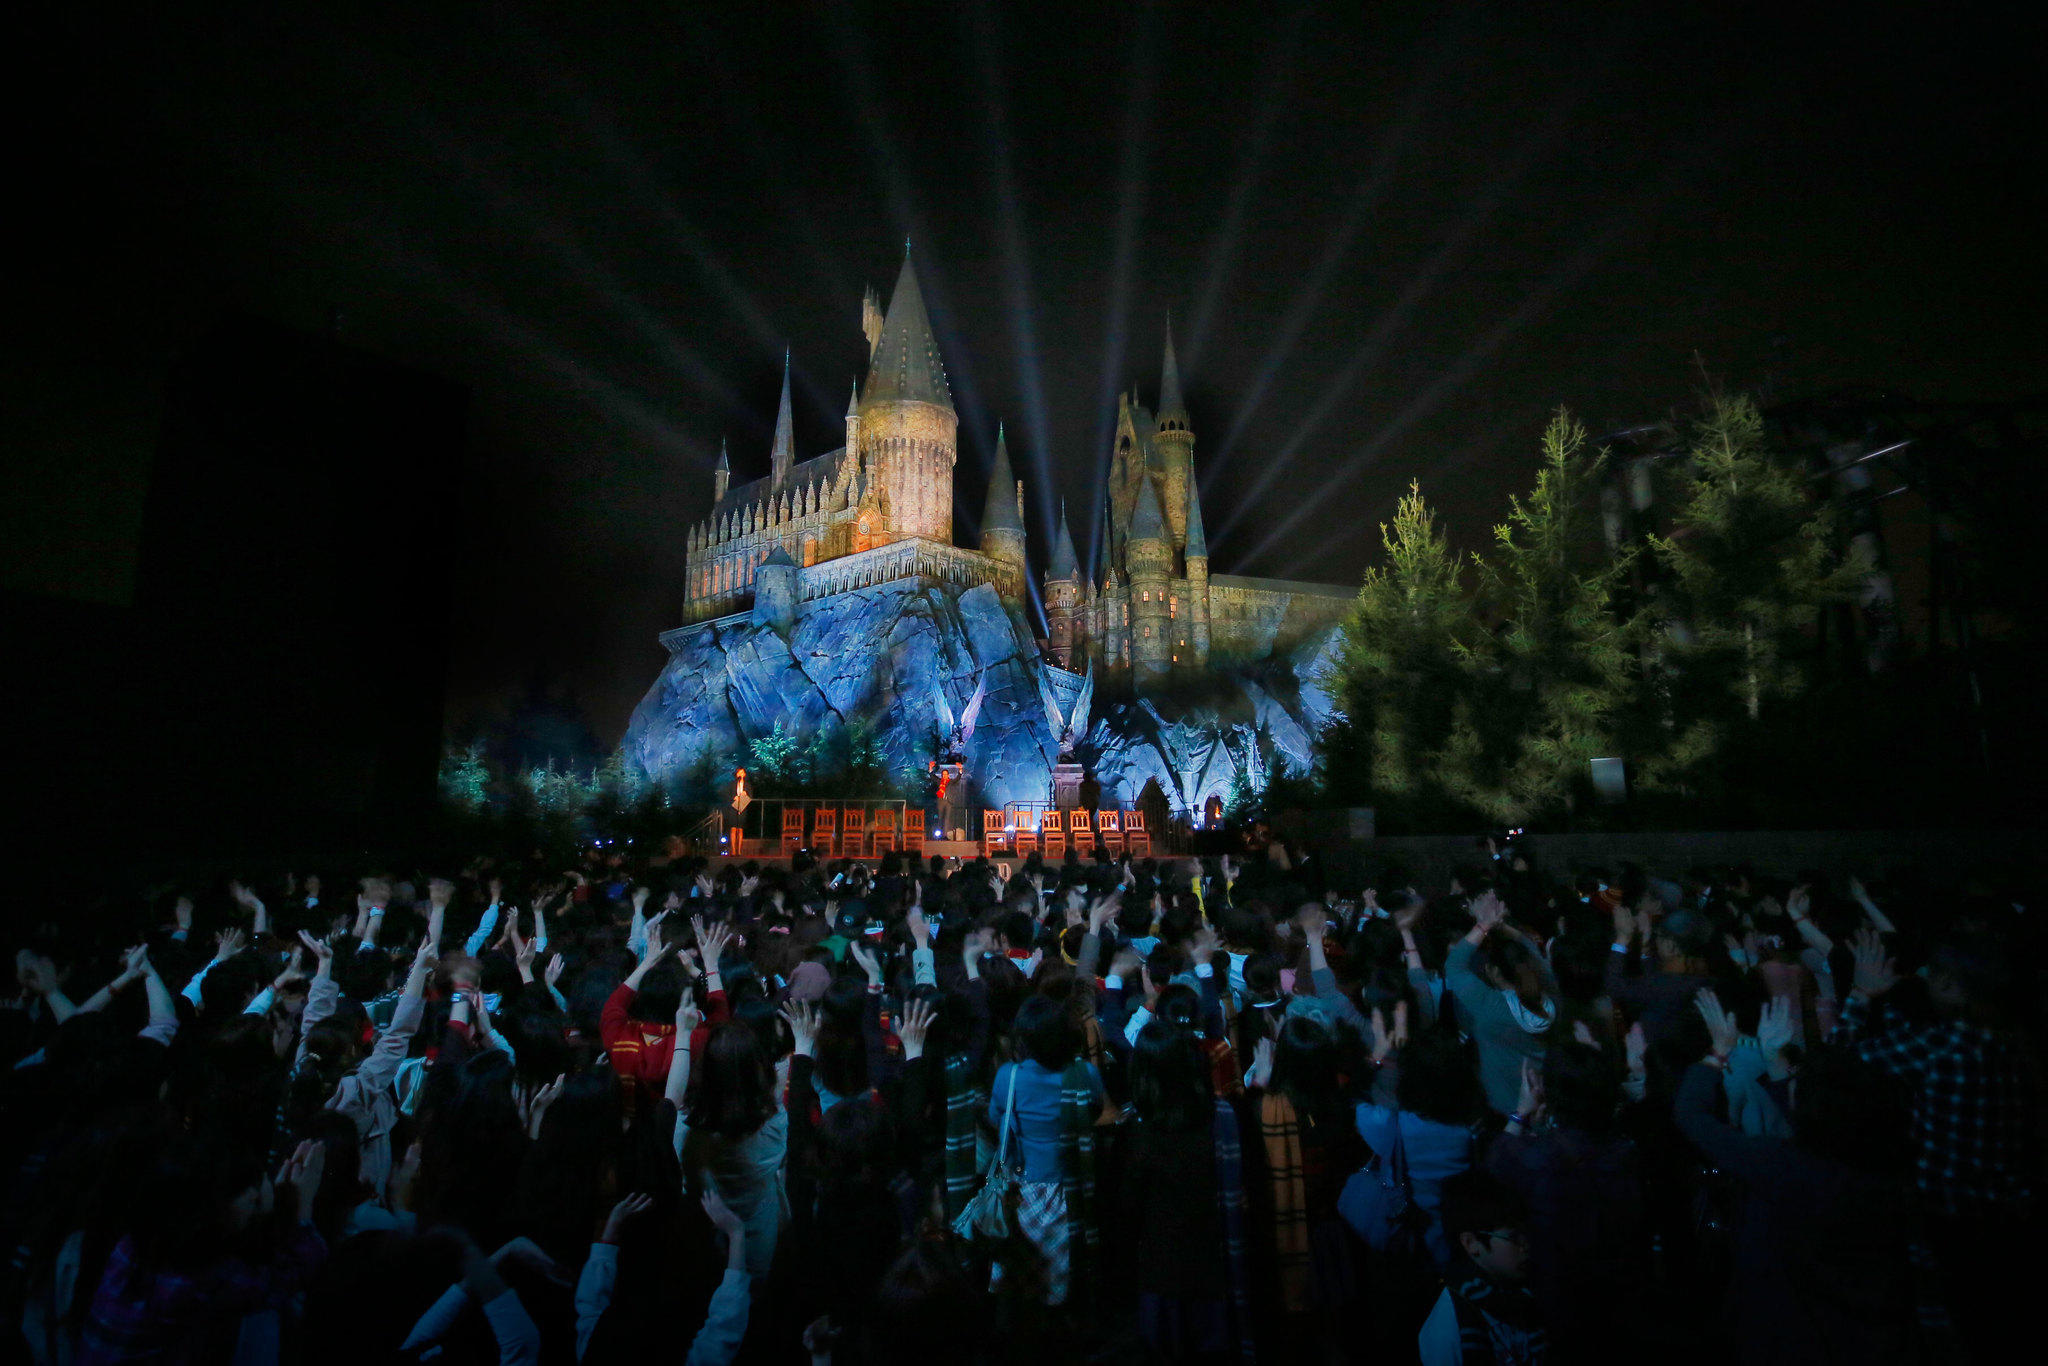 Universal Studios Japan unveiled Hogwarts castle -- the focal point of its forthcoming Wizarding World of Harry Potter attraction -- at a press event on Friday.